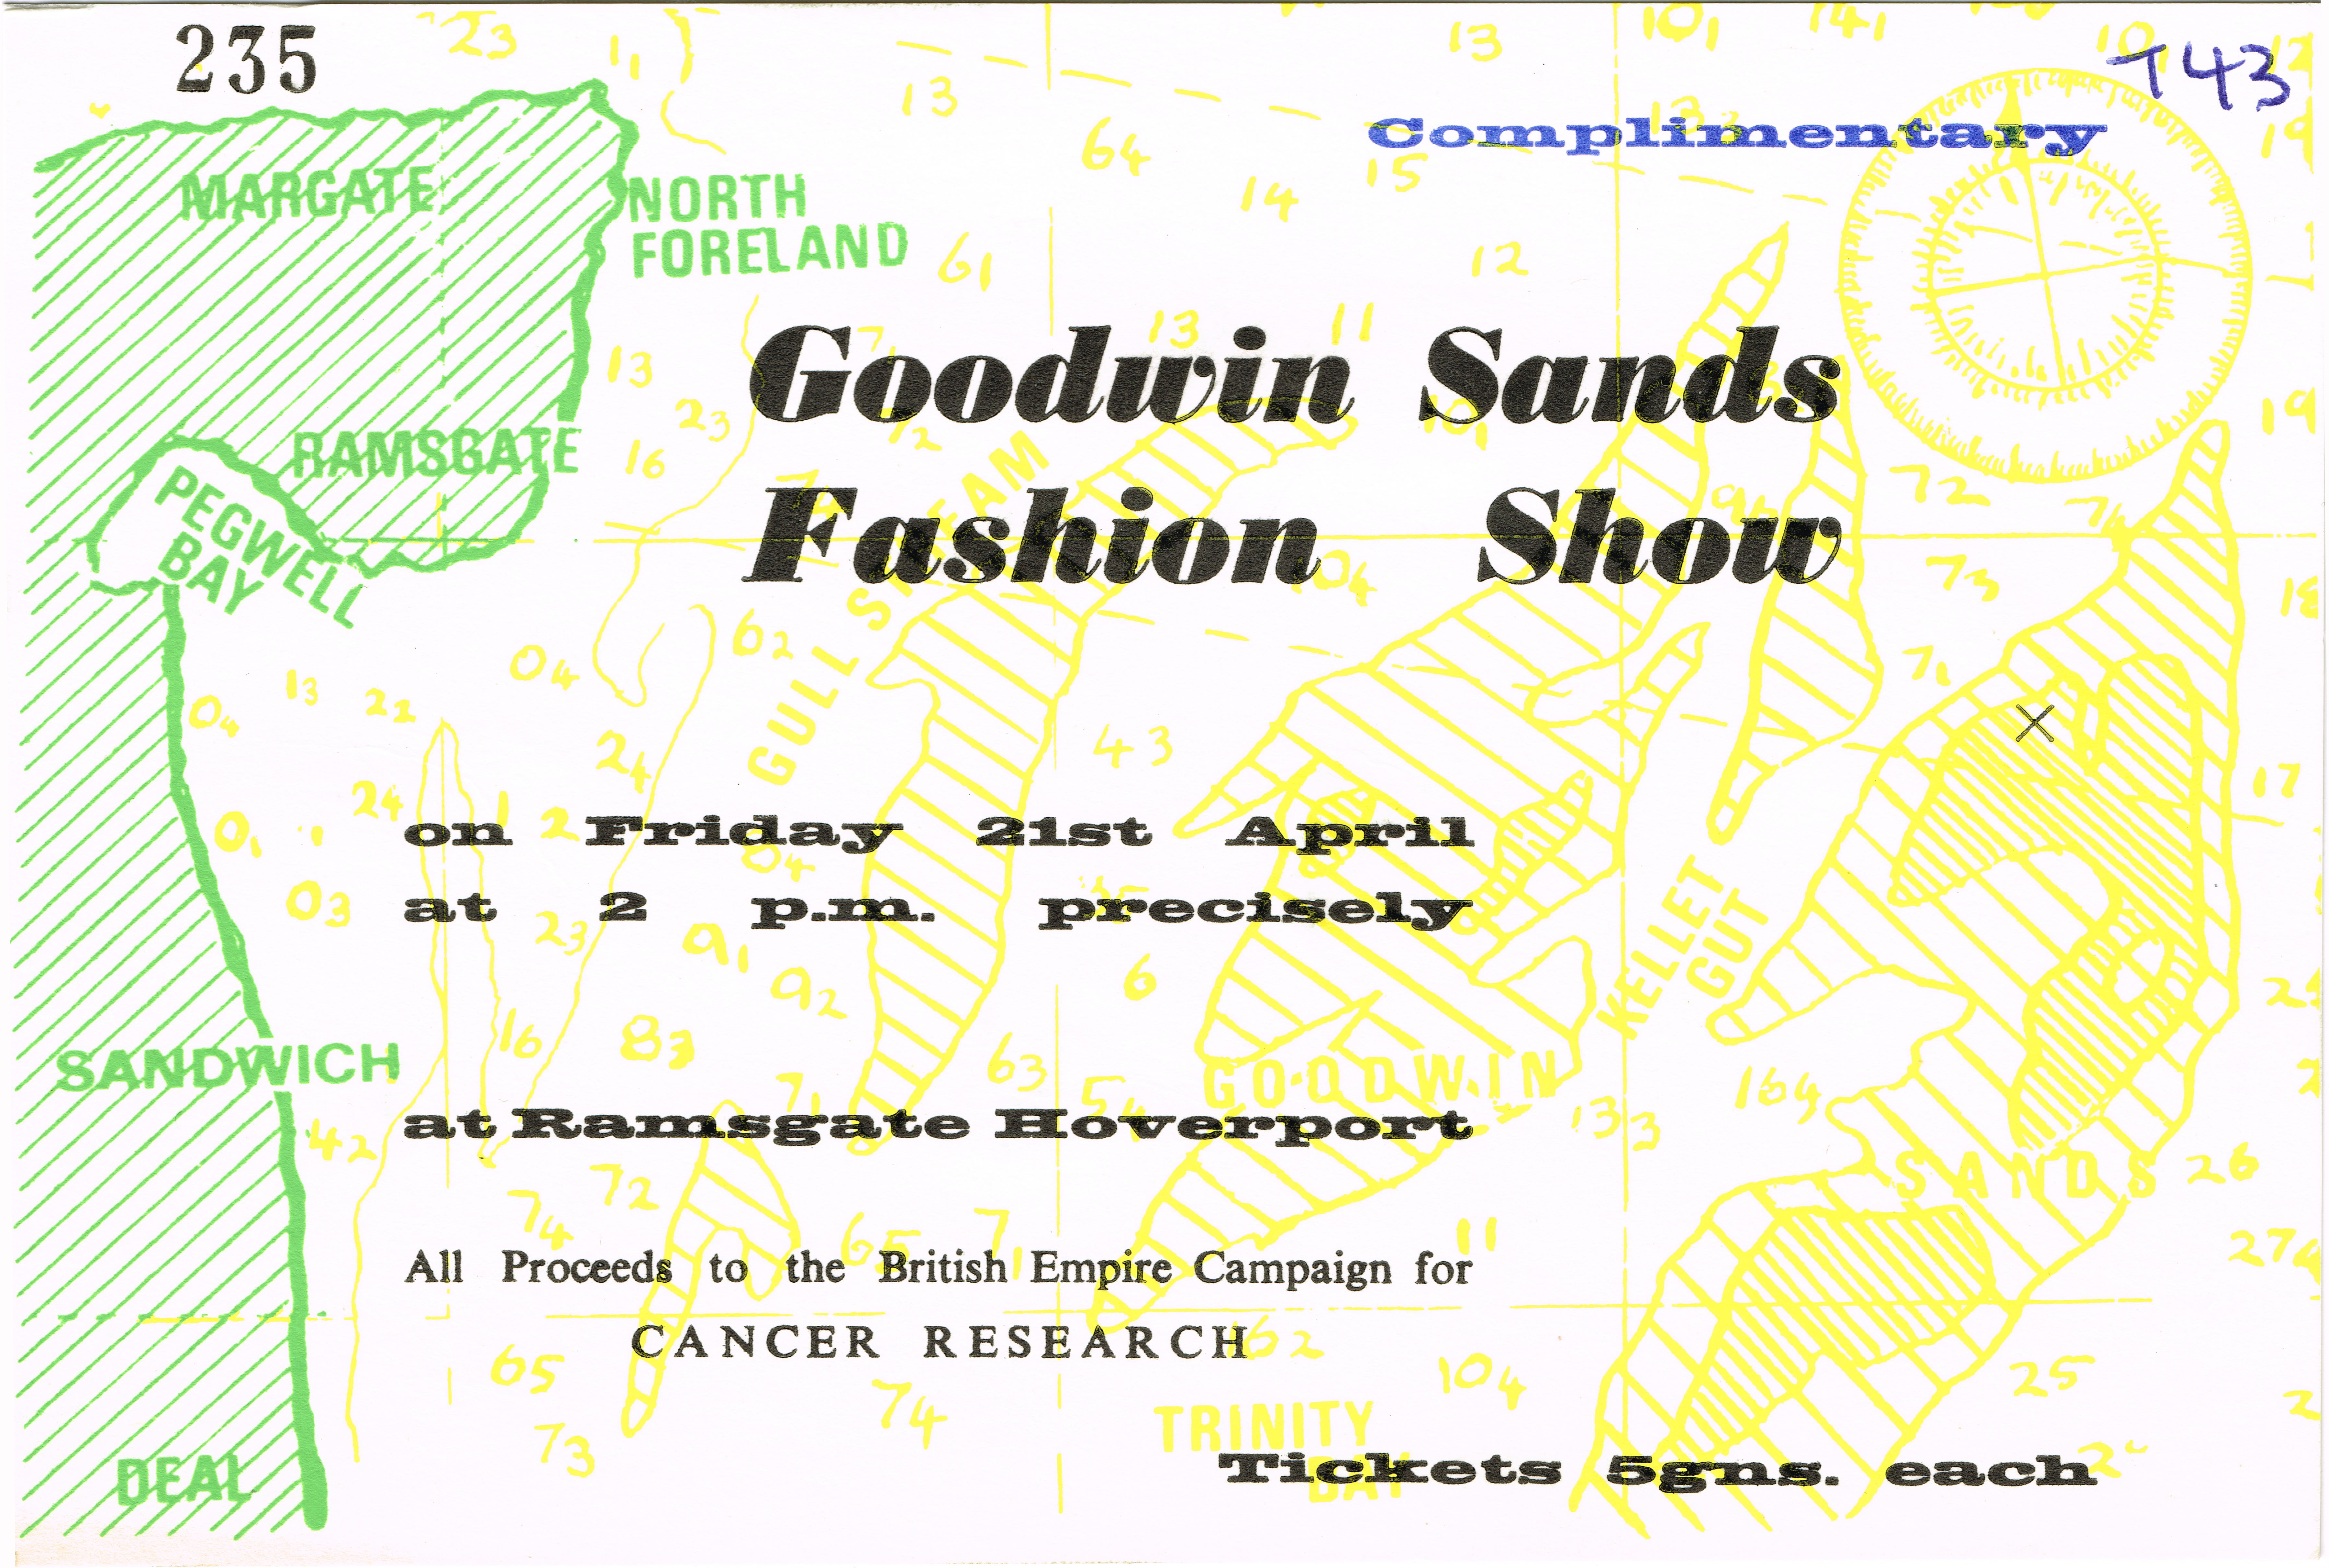 Advert for Goodwin Sands Fashion Show, printed by the Martell Press